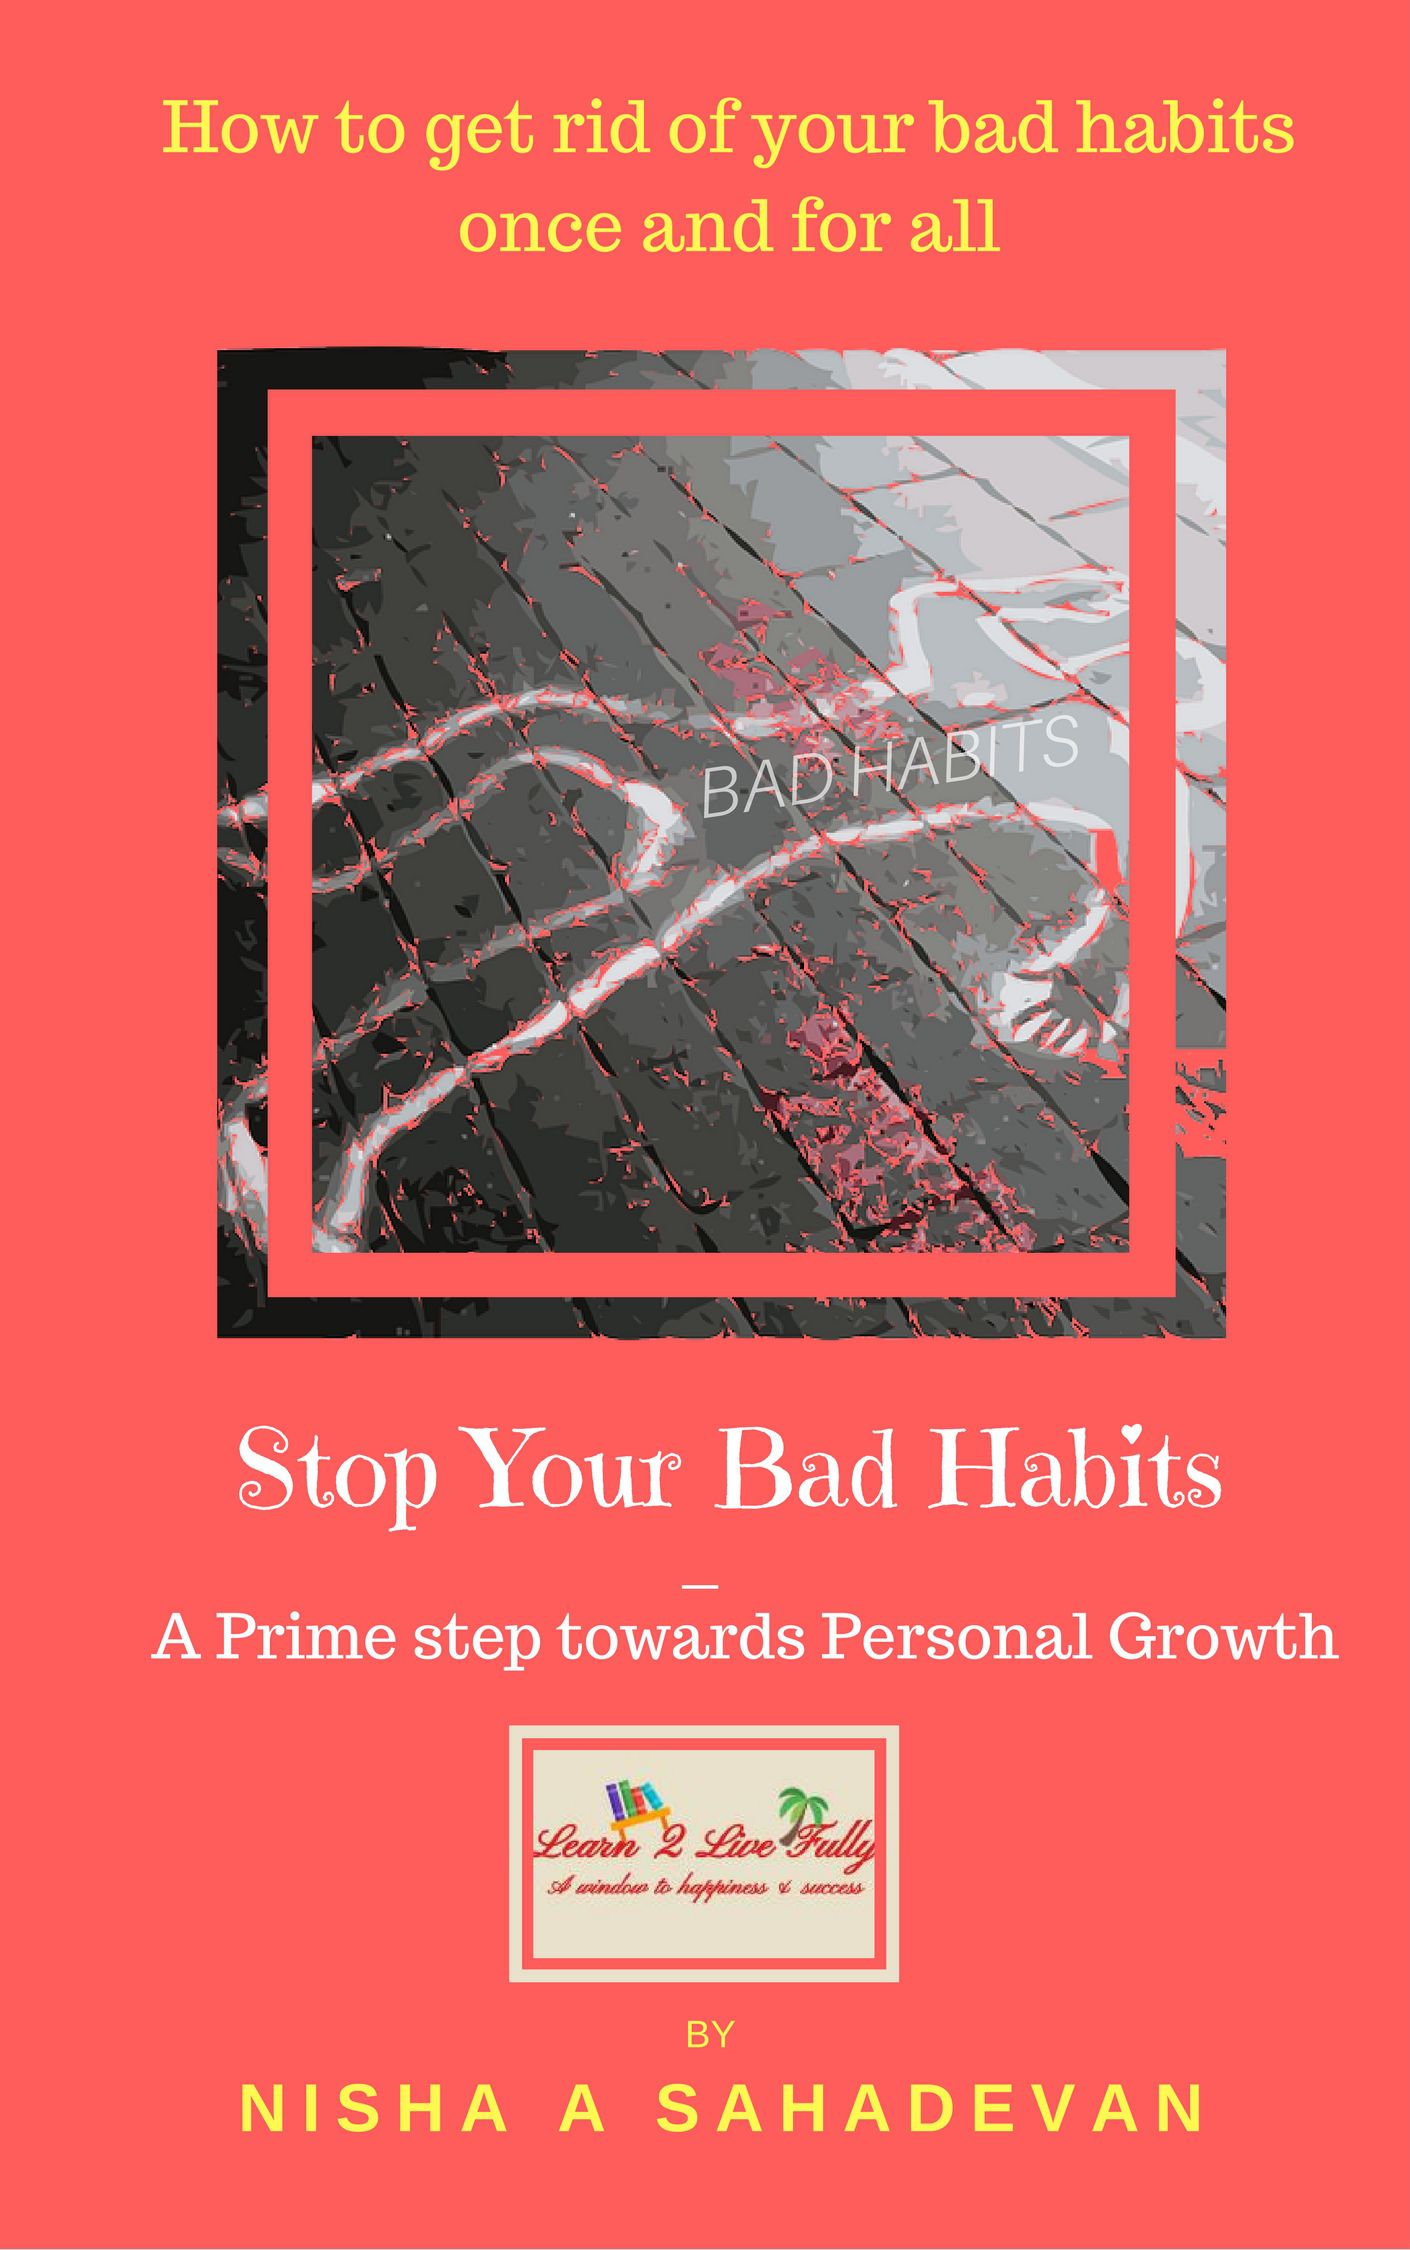 Stop Your Bad Habits – a Prime step towards Personal Growth